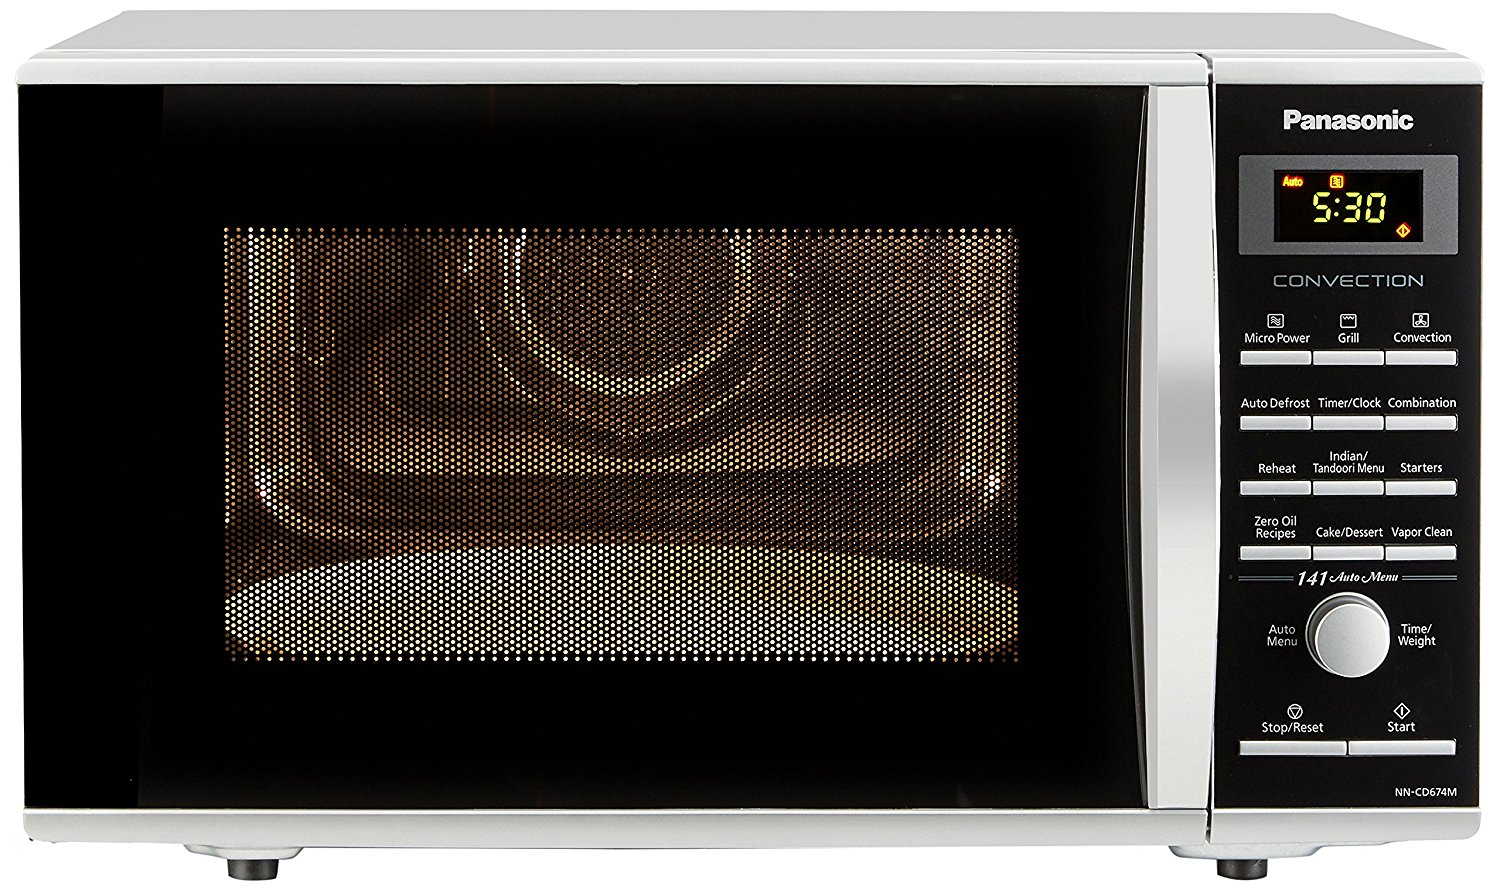 Panasonic 27 L Convection Microwave Oven Nn Cd674mfdg